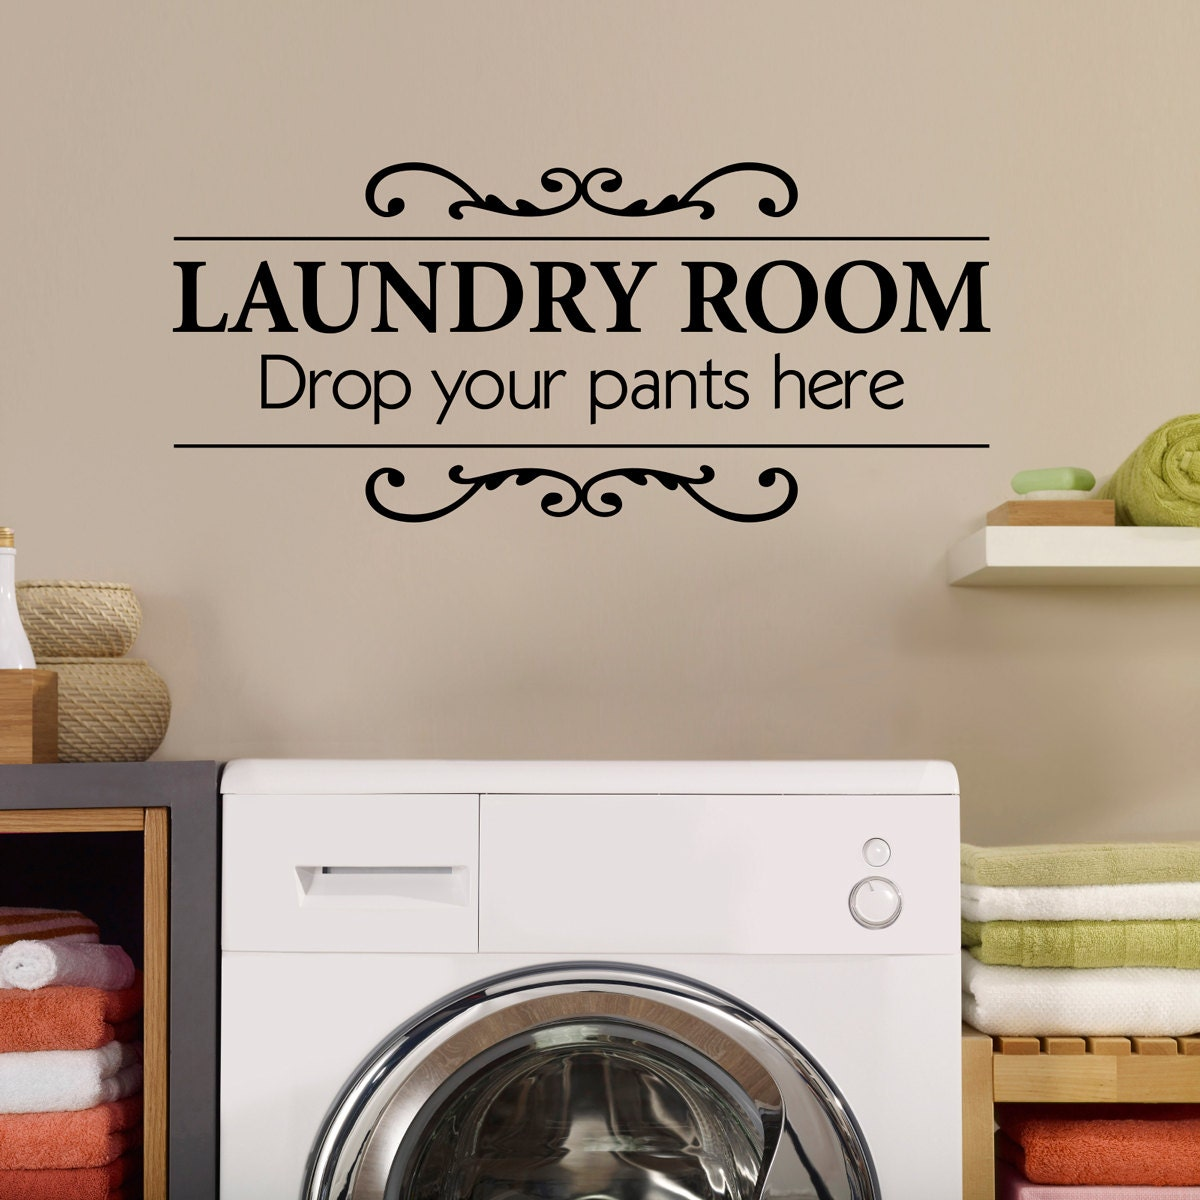 Laundry Room Wall Decor Stickers : Laundry room wall decal drop your pants here utility